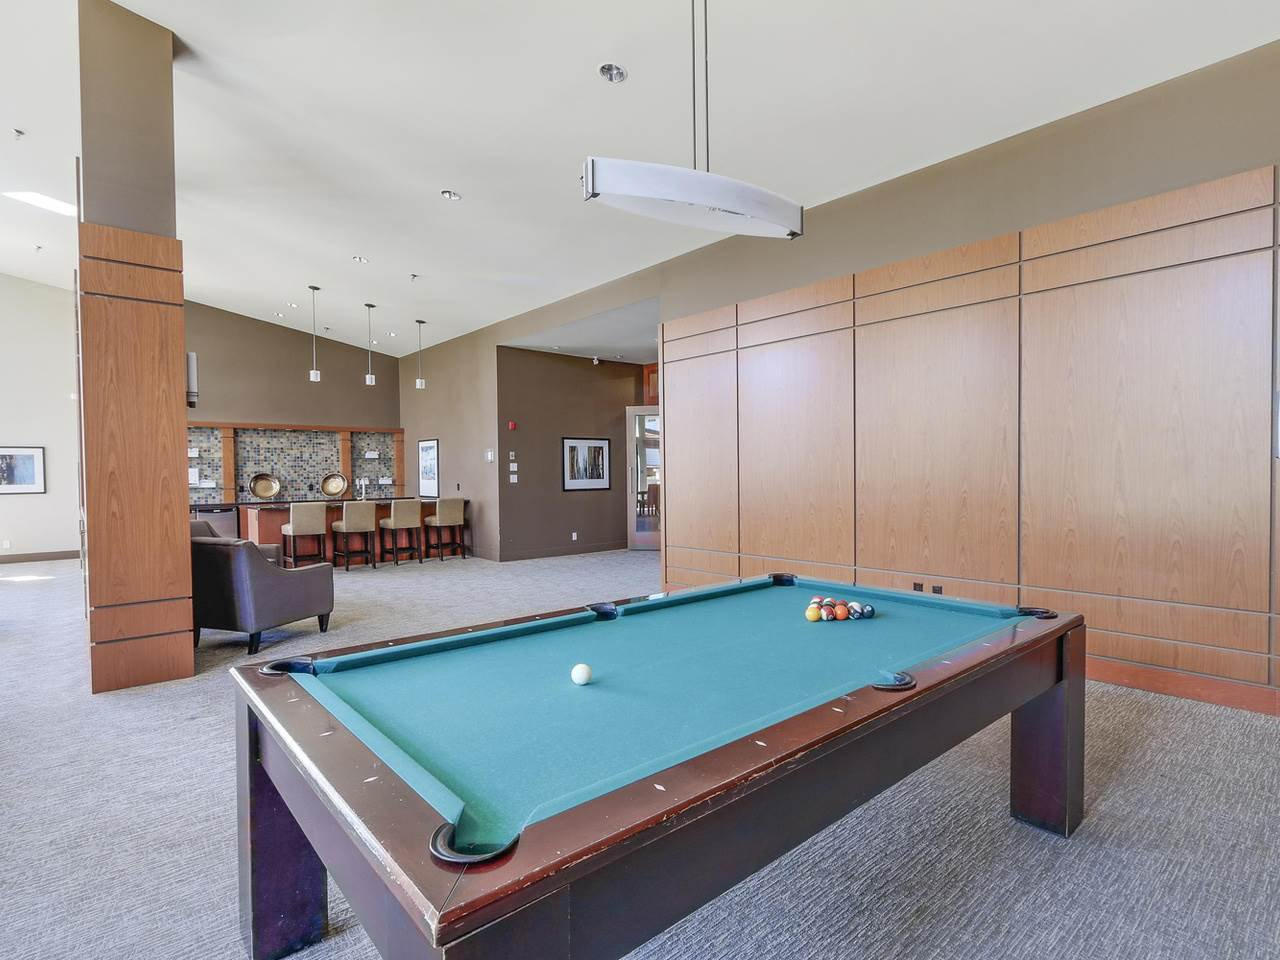 """Photo 13: Photos: 108 1150 KENSAL Place in Coquitlam: New Horizons Condo for sale in """"Windsor Gate"""" : MLS®# R2102595"""